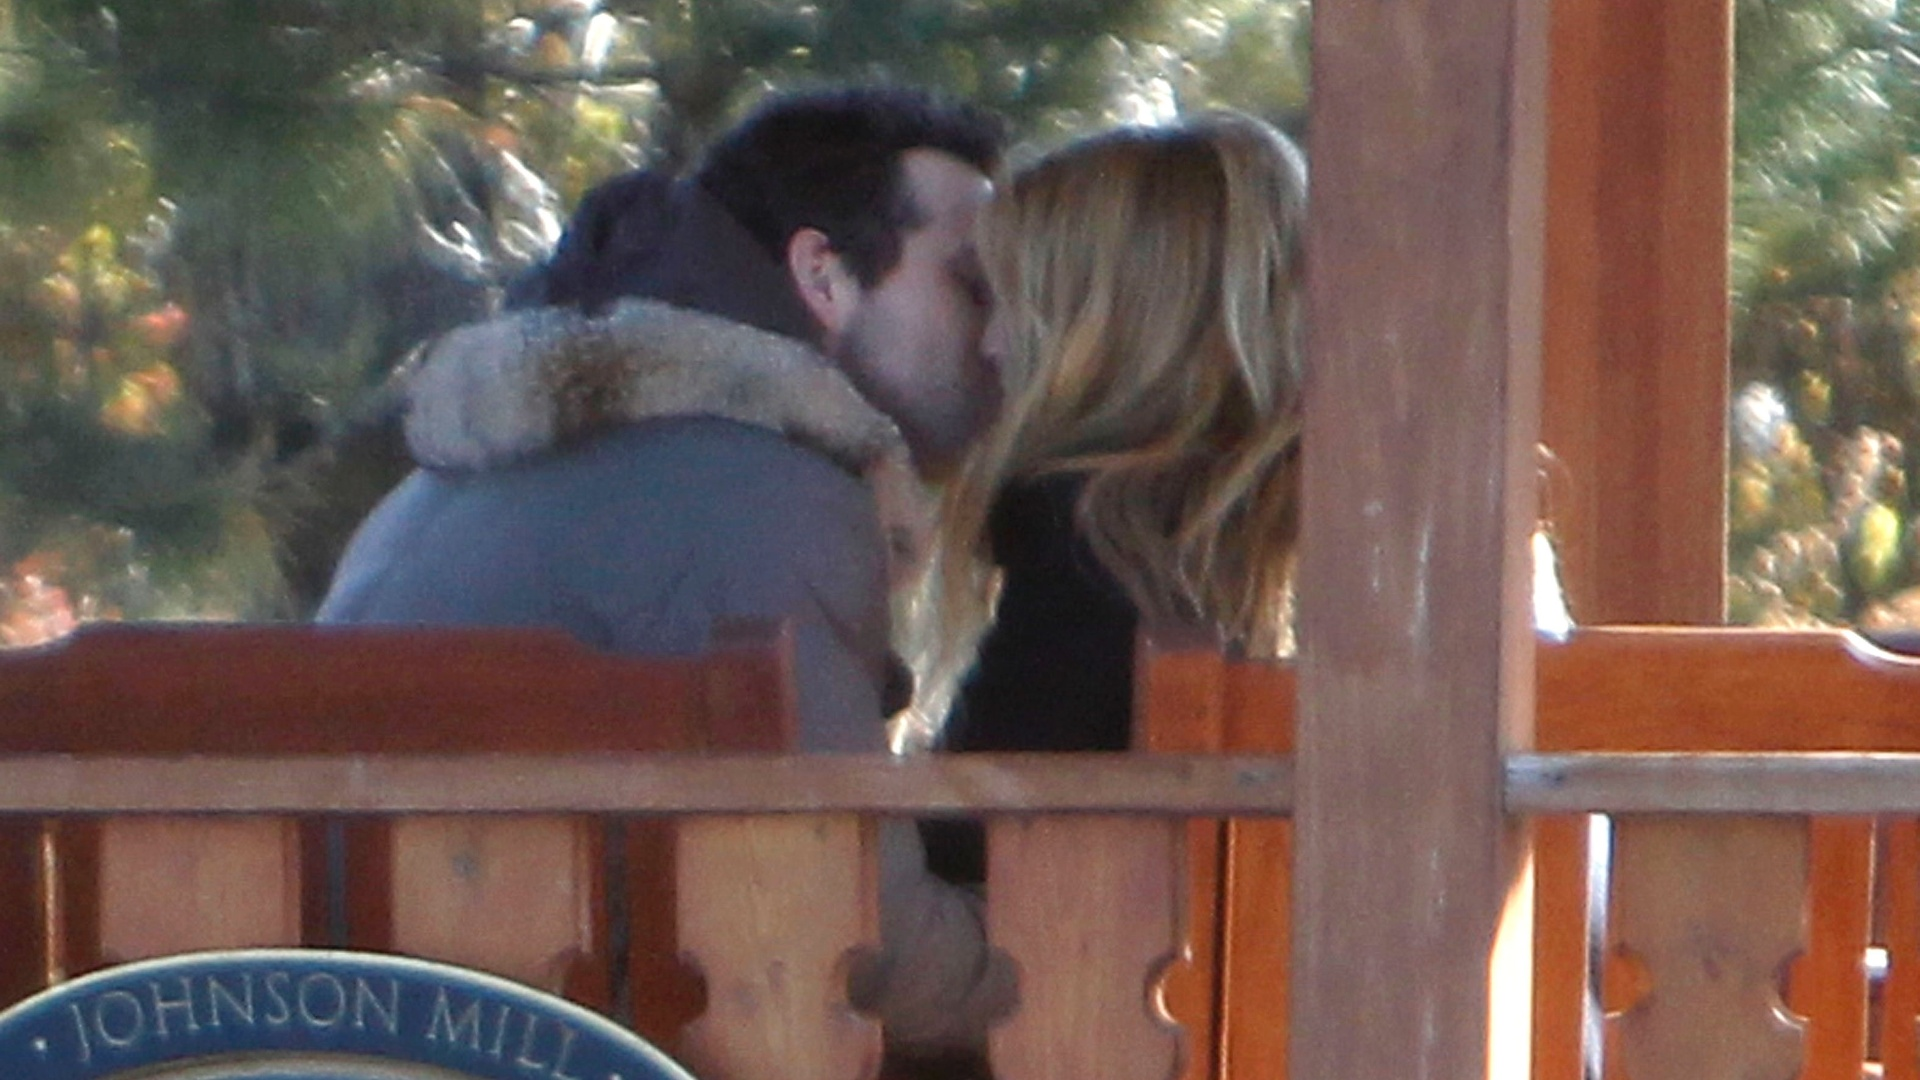 Ryan Reynolds e Blake Lively curtem momentos romnticos e se beijam (27/11/11)